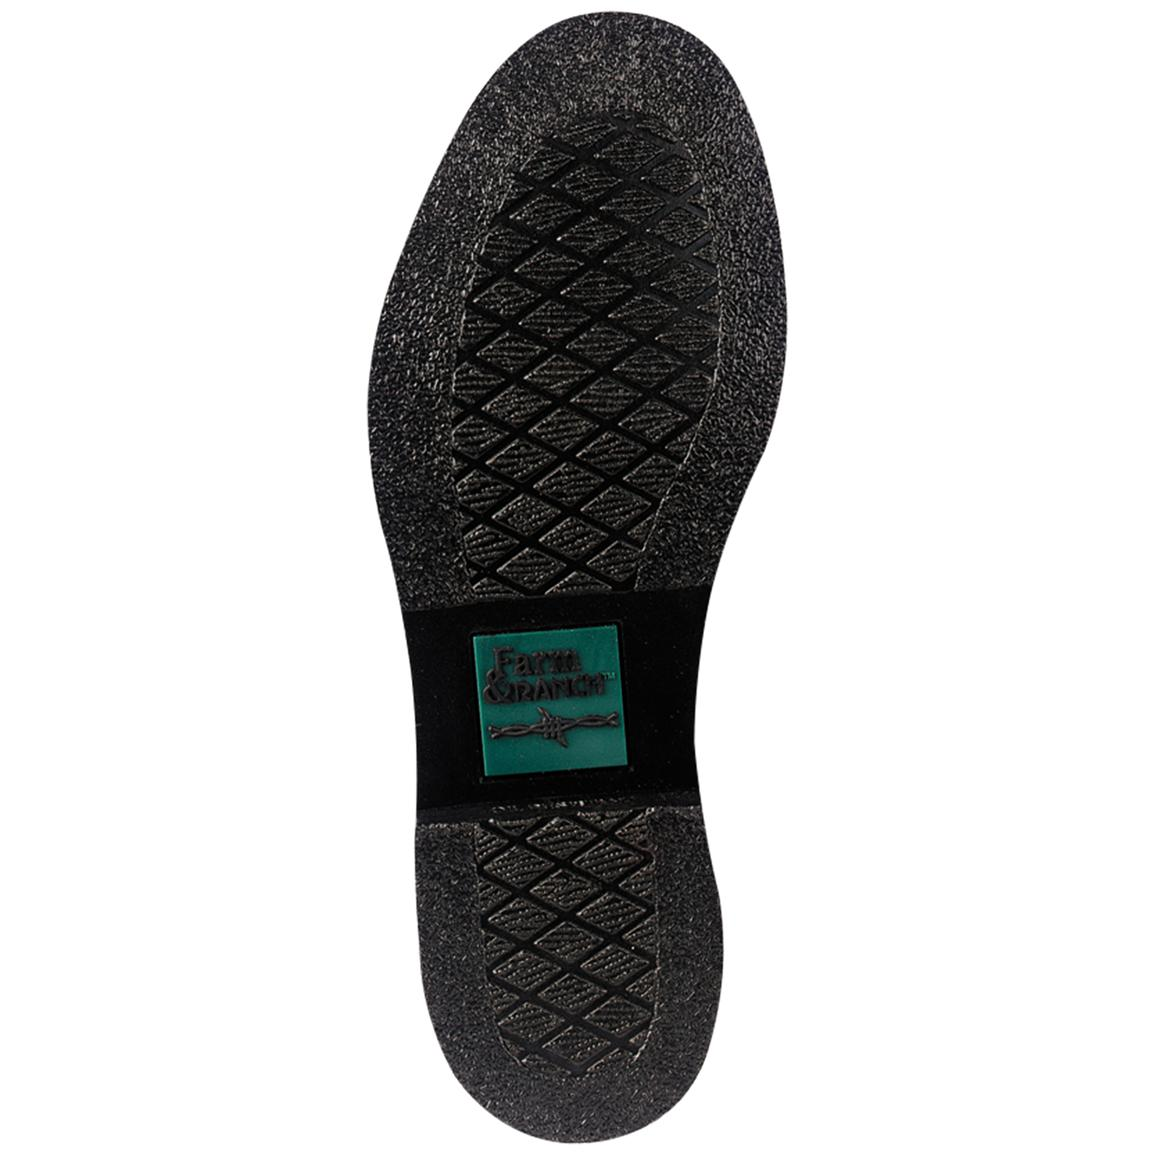 Proprietary oil-resistant X-10 rubber outsole for traction